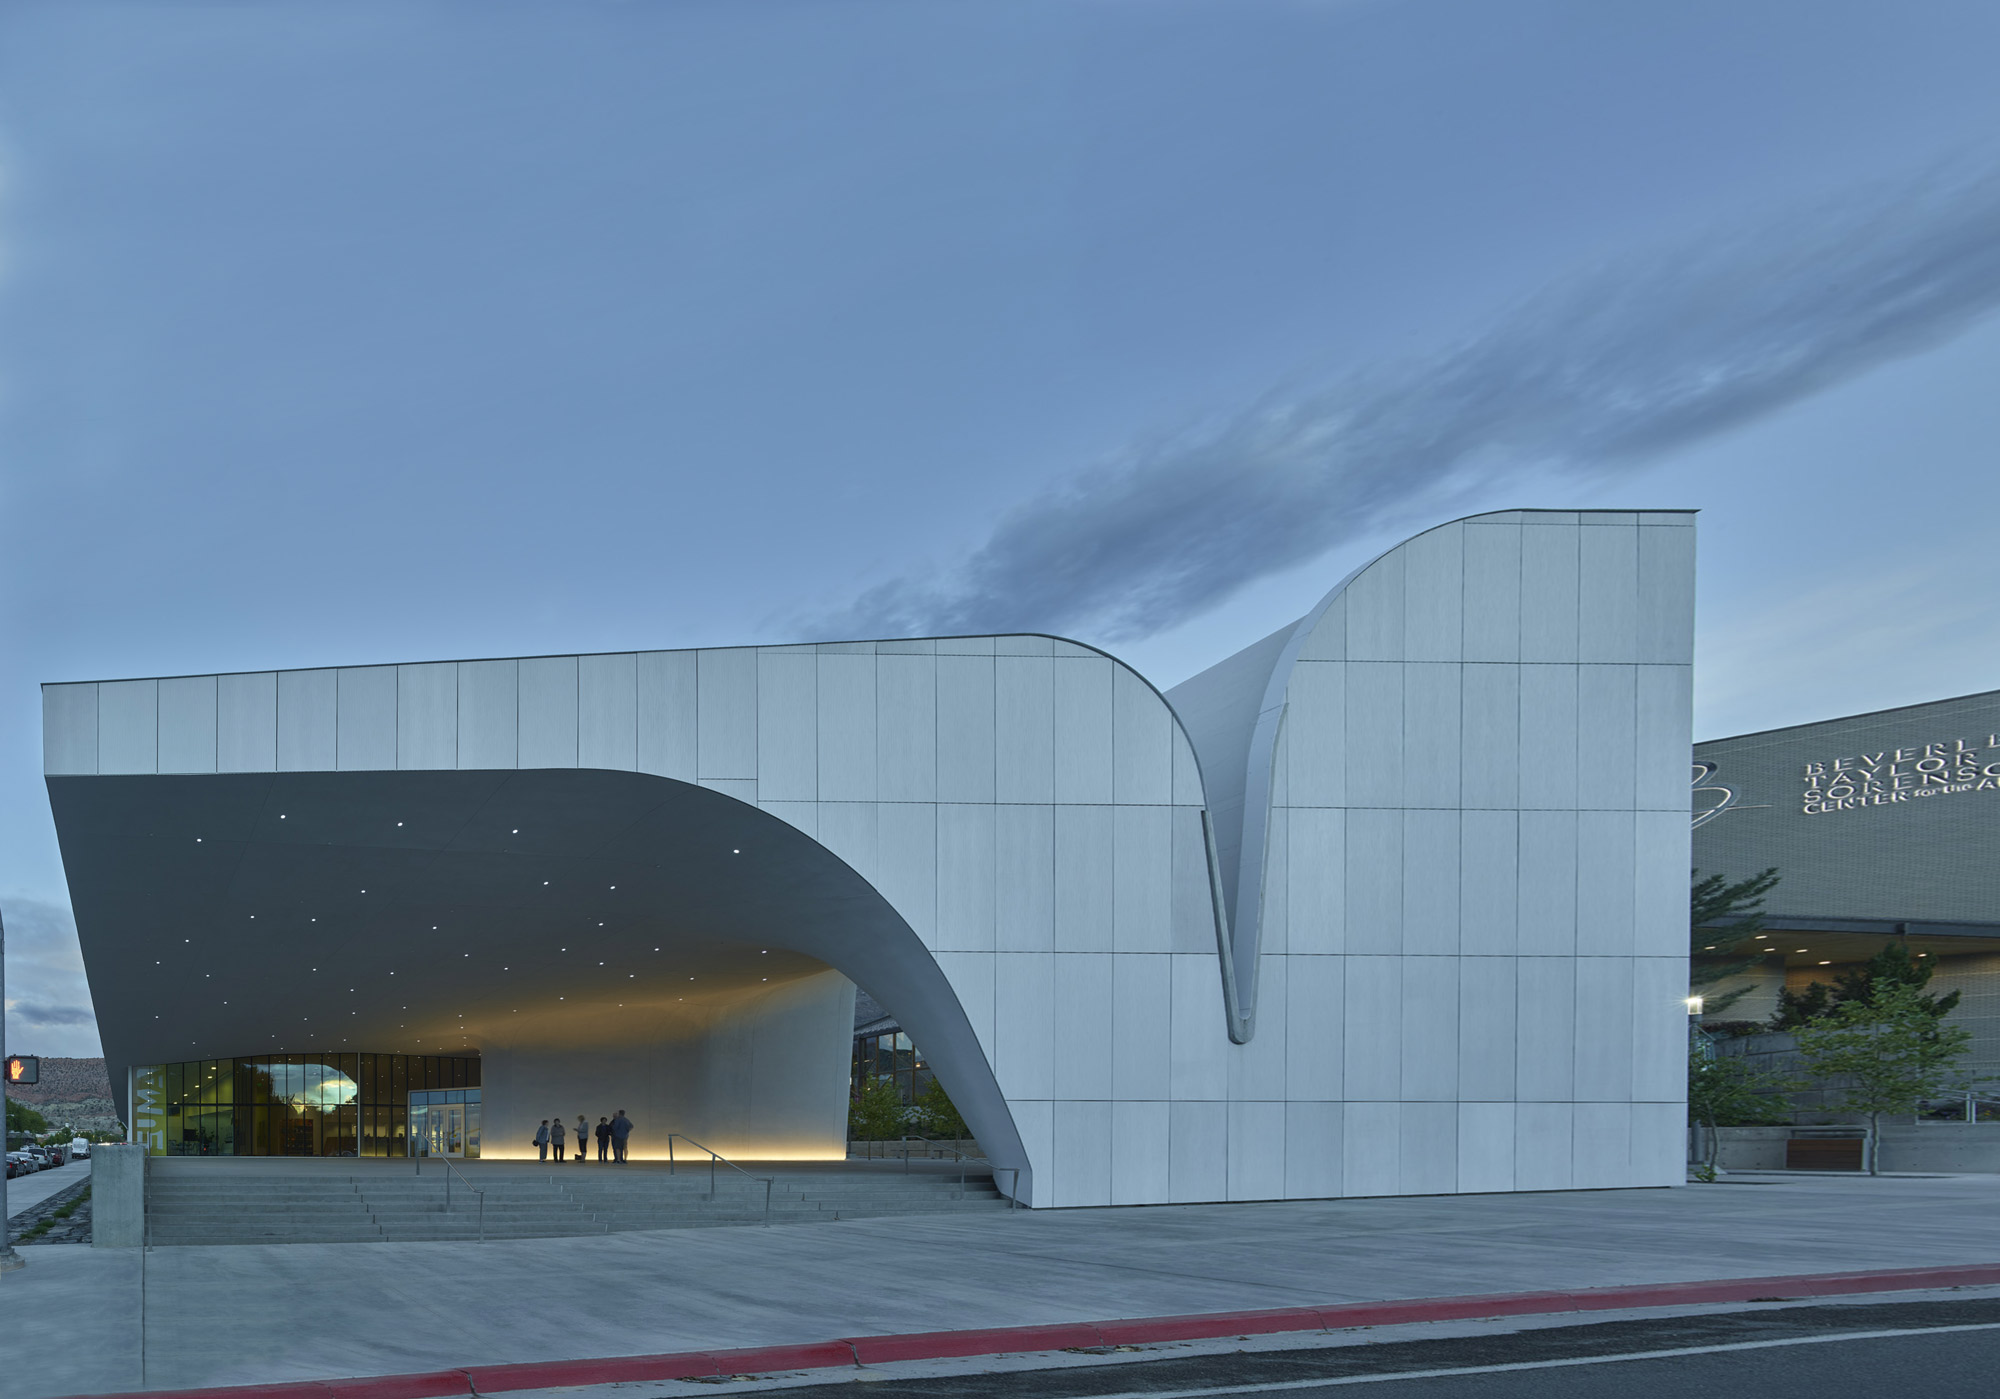 Southern Utah Museum of Art (SUMA) © Tim Hursley